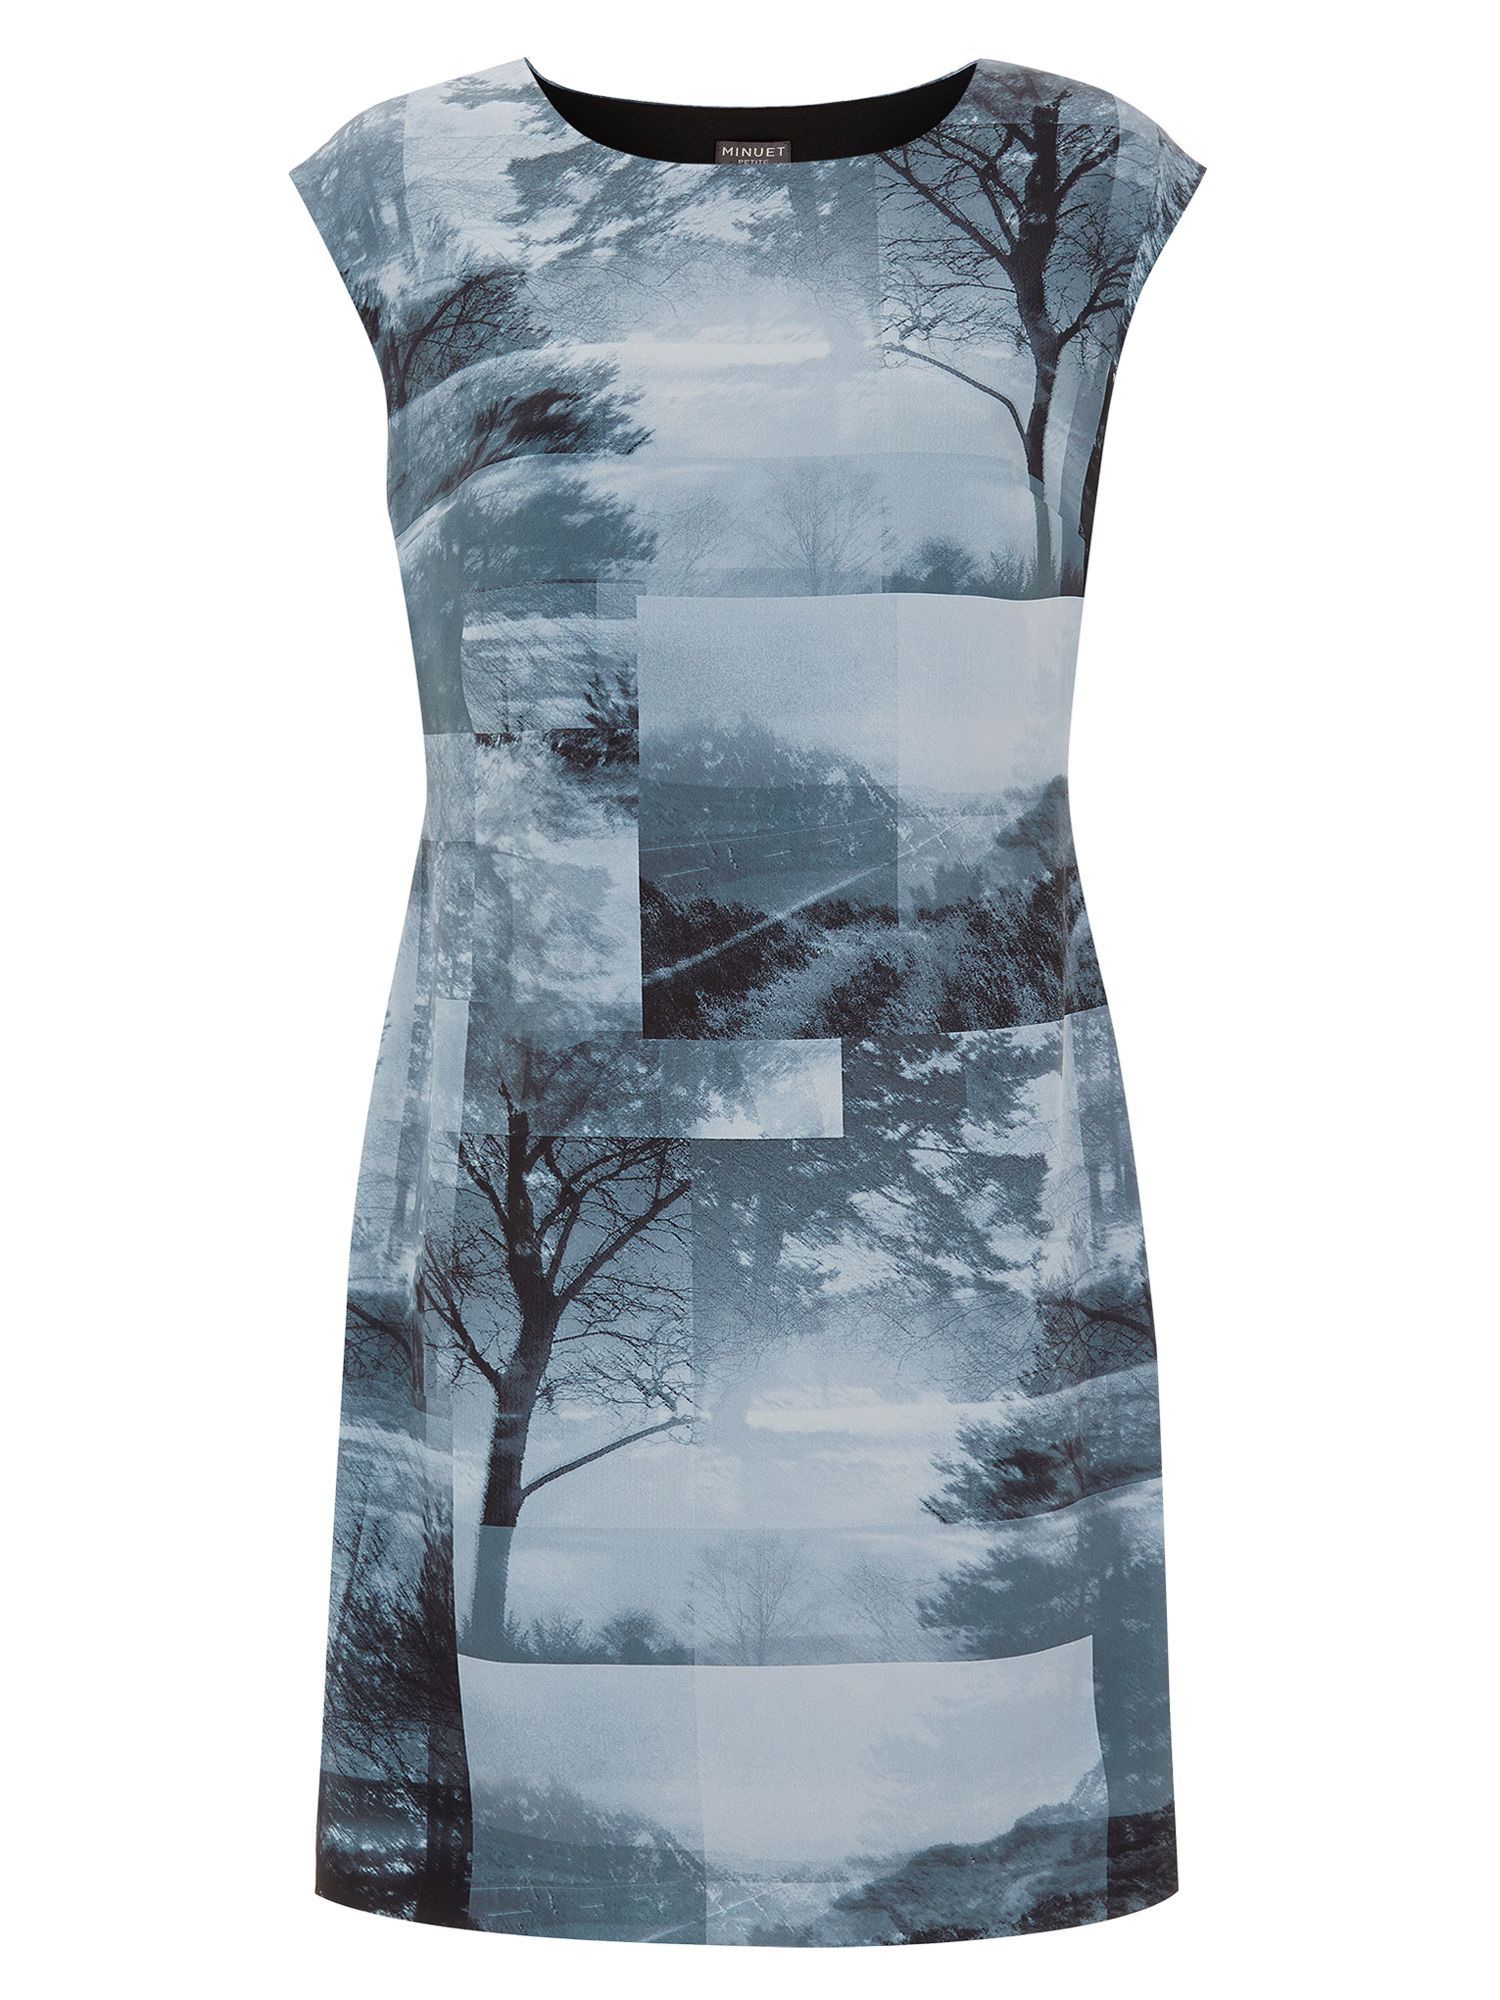 Monochrome landscape tunic dress